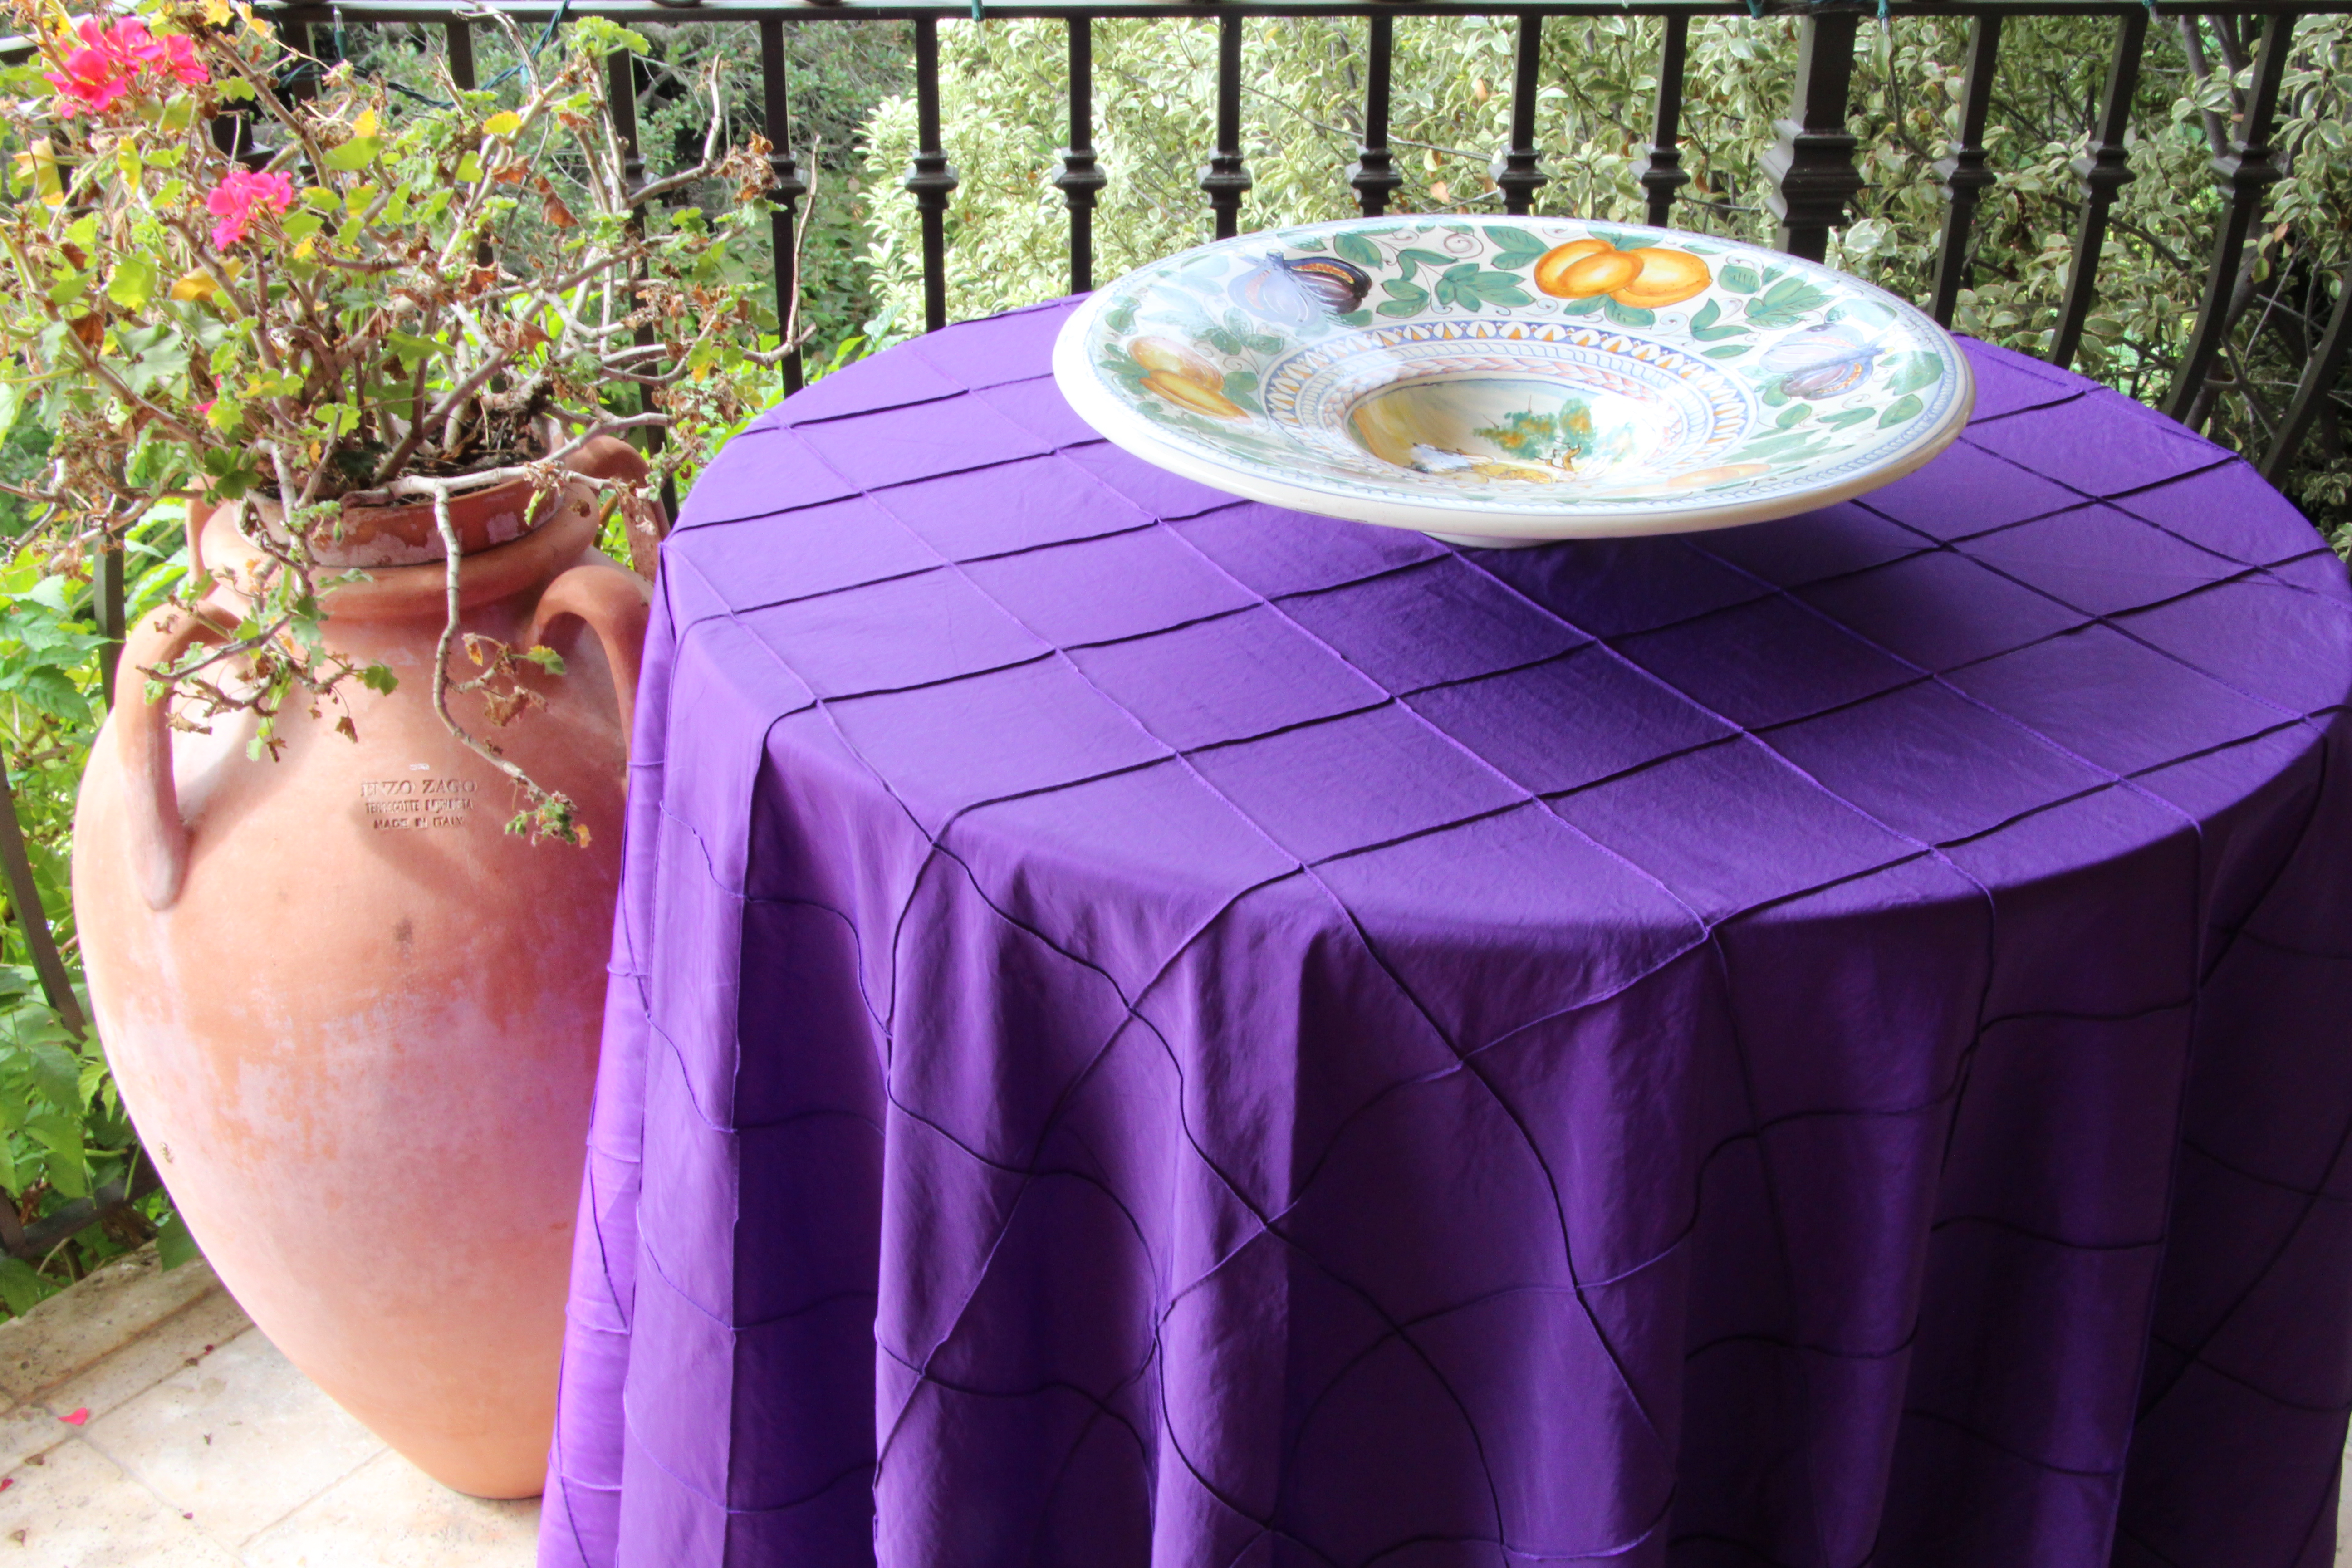 liven any occasion with festive bombay pintuck table linens img accent cloth purple bold and bright option that can used for punch color corner end ikea distressed white coffee